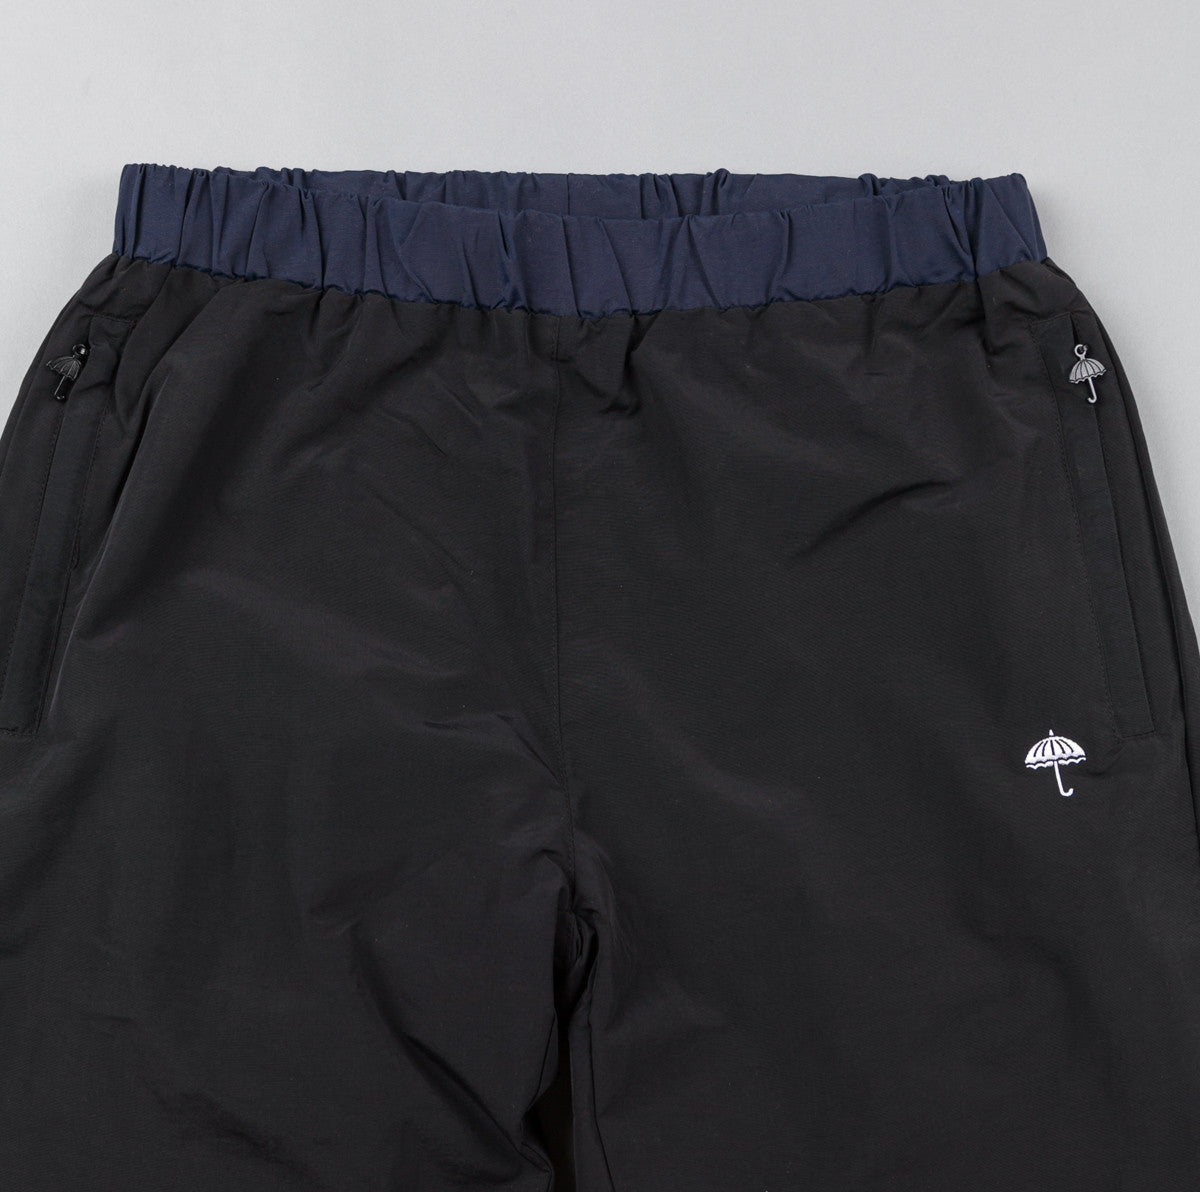 Helas Classic Sweatpants - Black / Navy